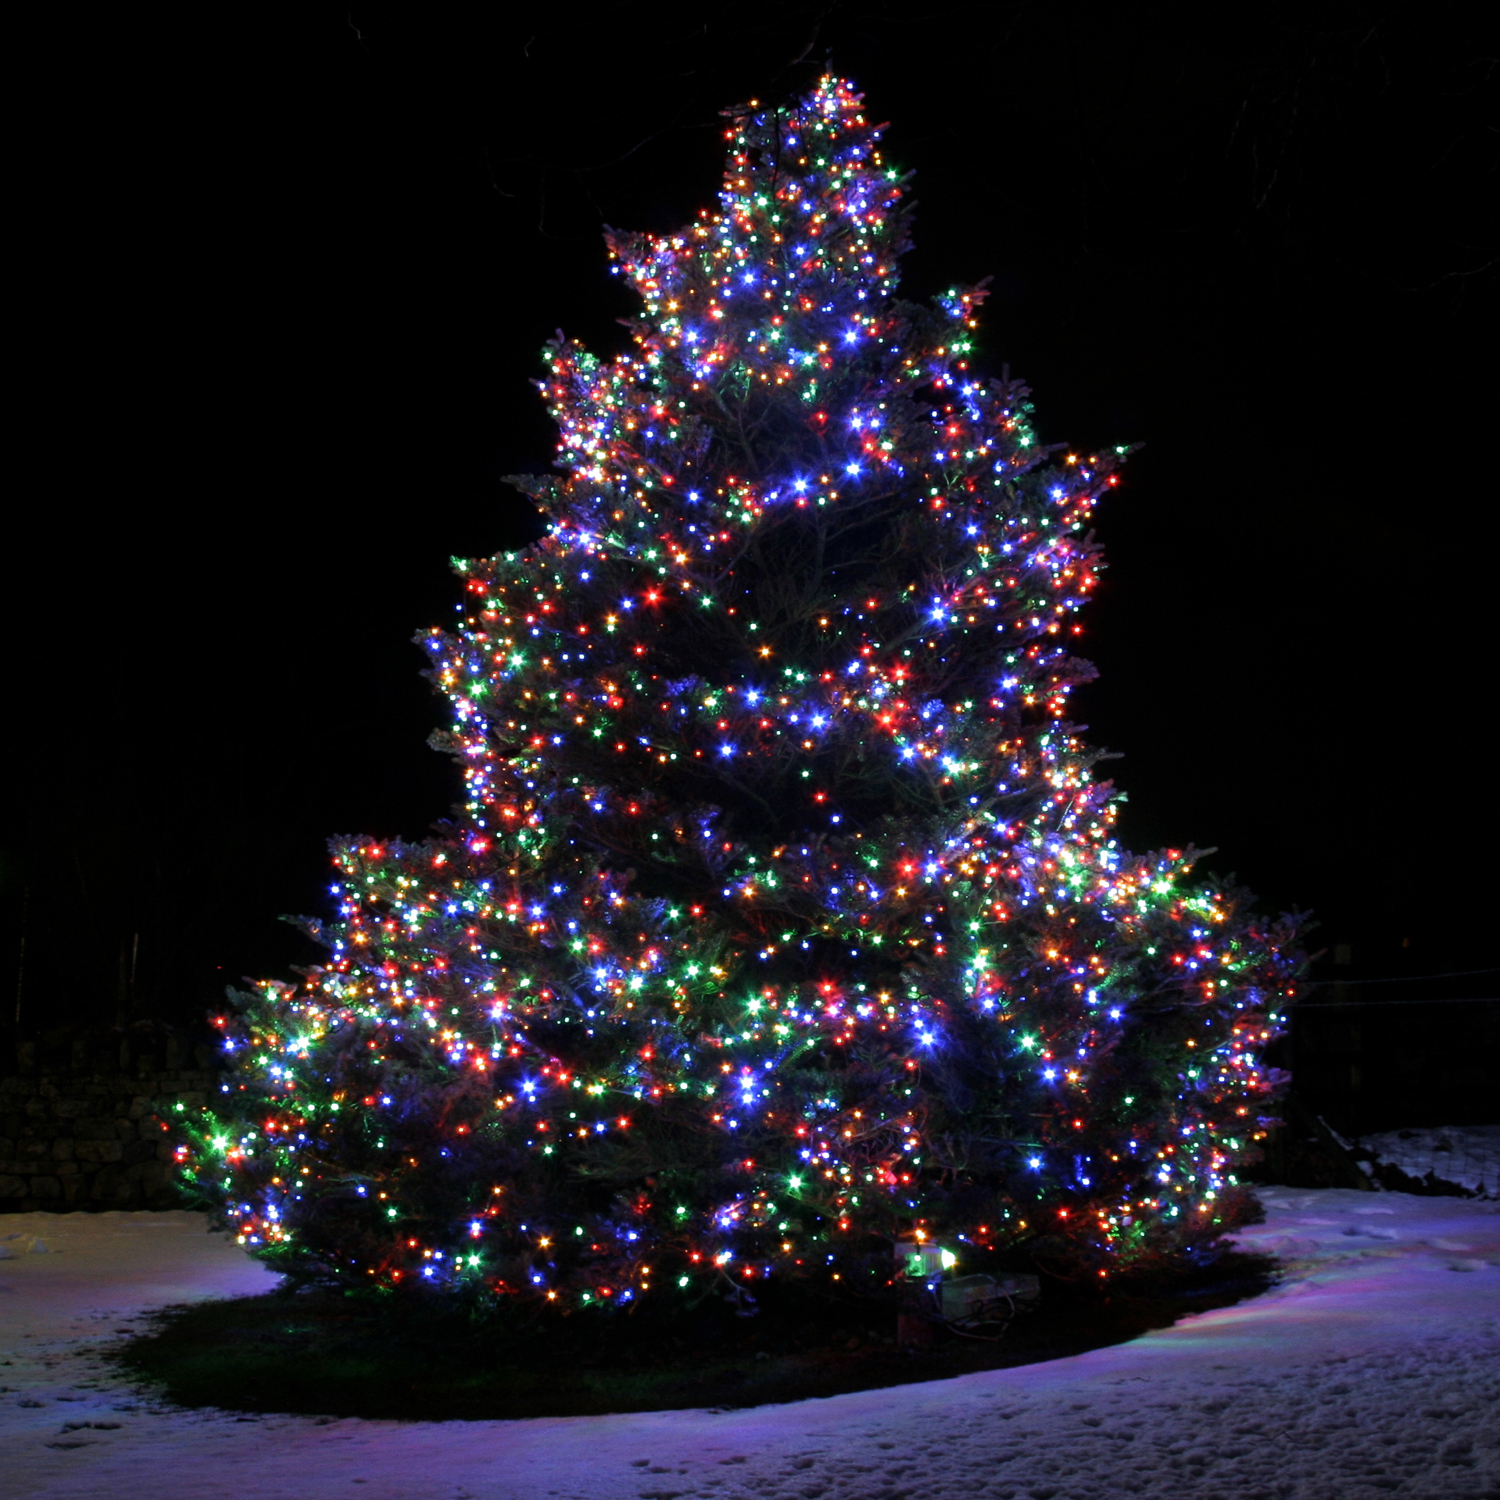 Outdoor Xmas Tree Lights Outdoor led xmas tree lights outdoor led xmas tree lights page 0 10 things to consider before installing christmas lights on outdoor workwithnaturefo